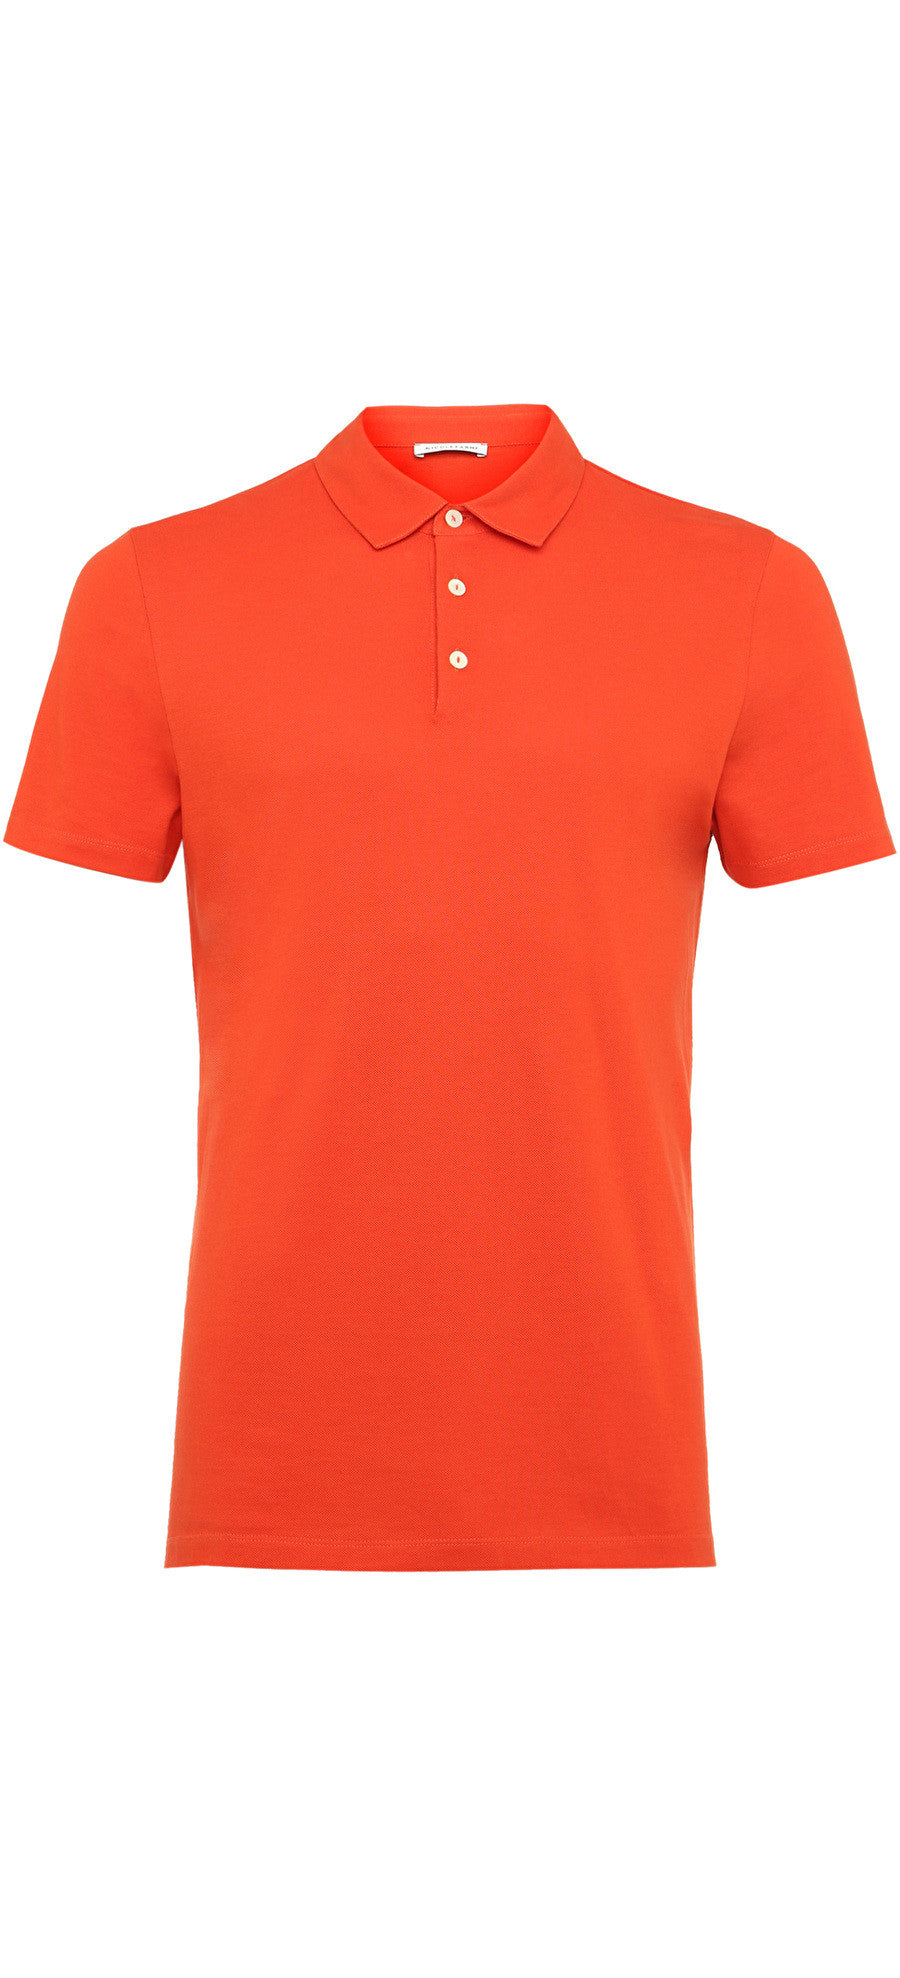 Judd Fire Polo